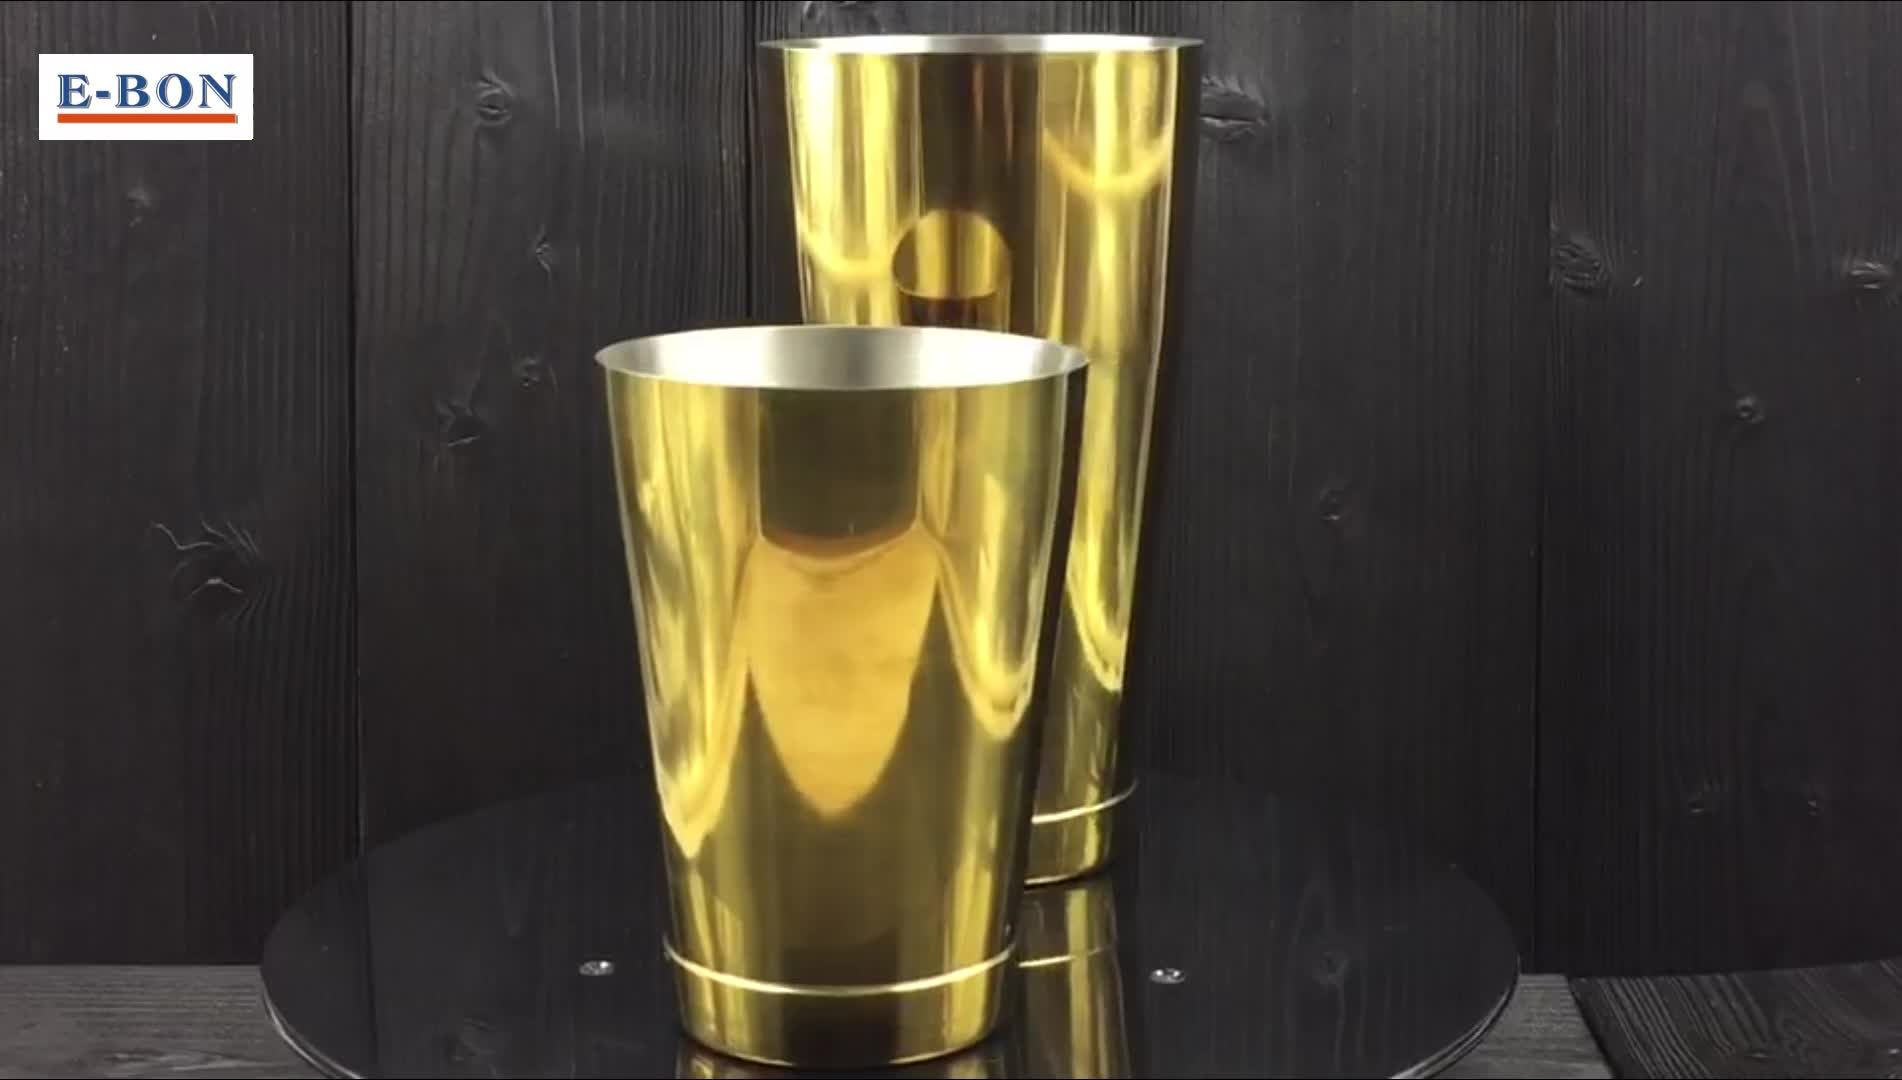 FDA AQpproved Stainless Steel Copper Gold Boston Cocktail Shaker